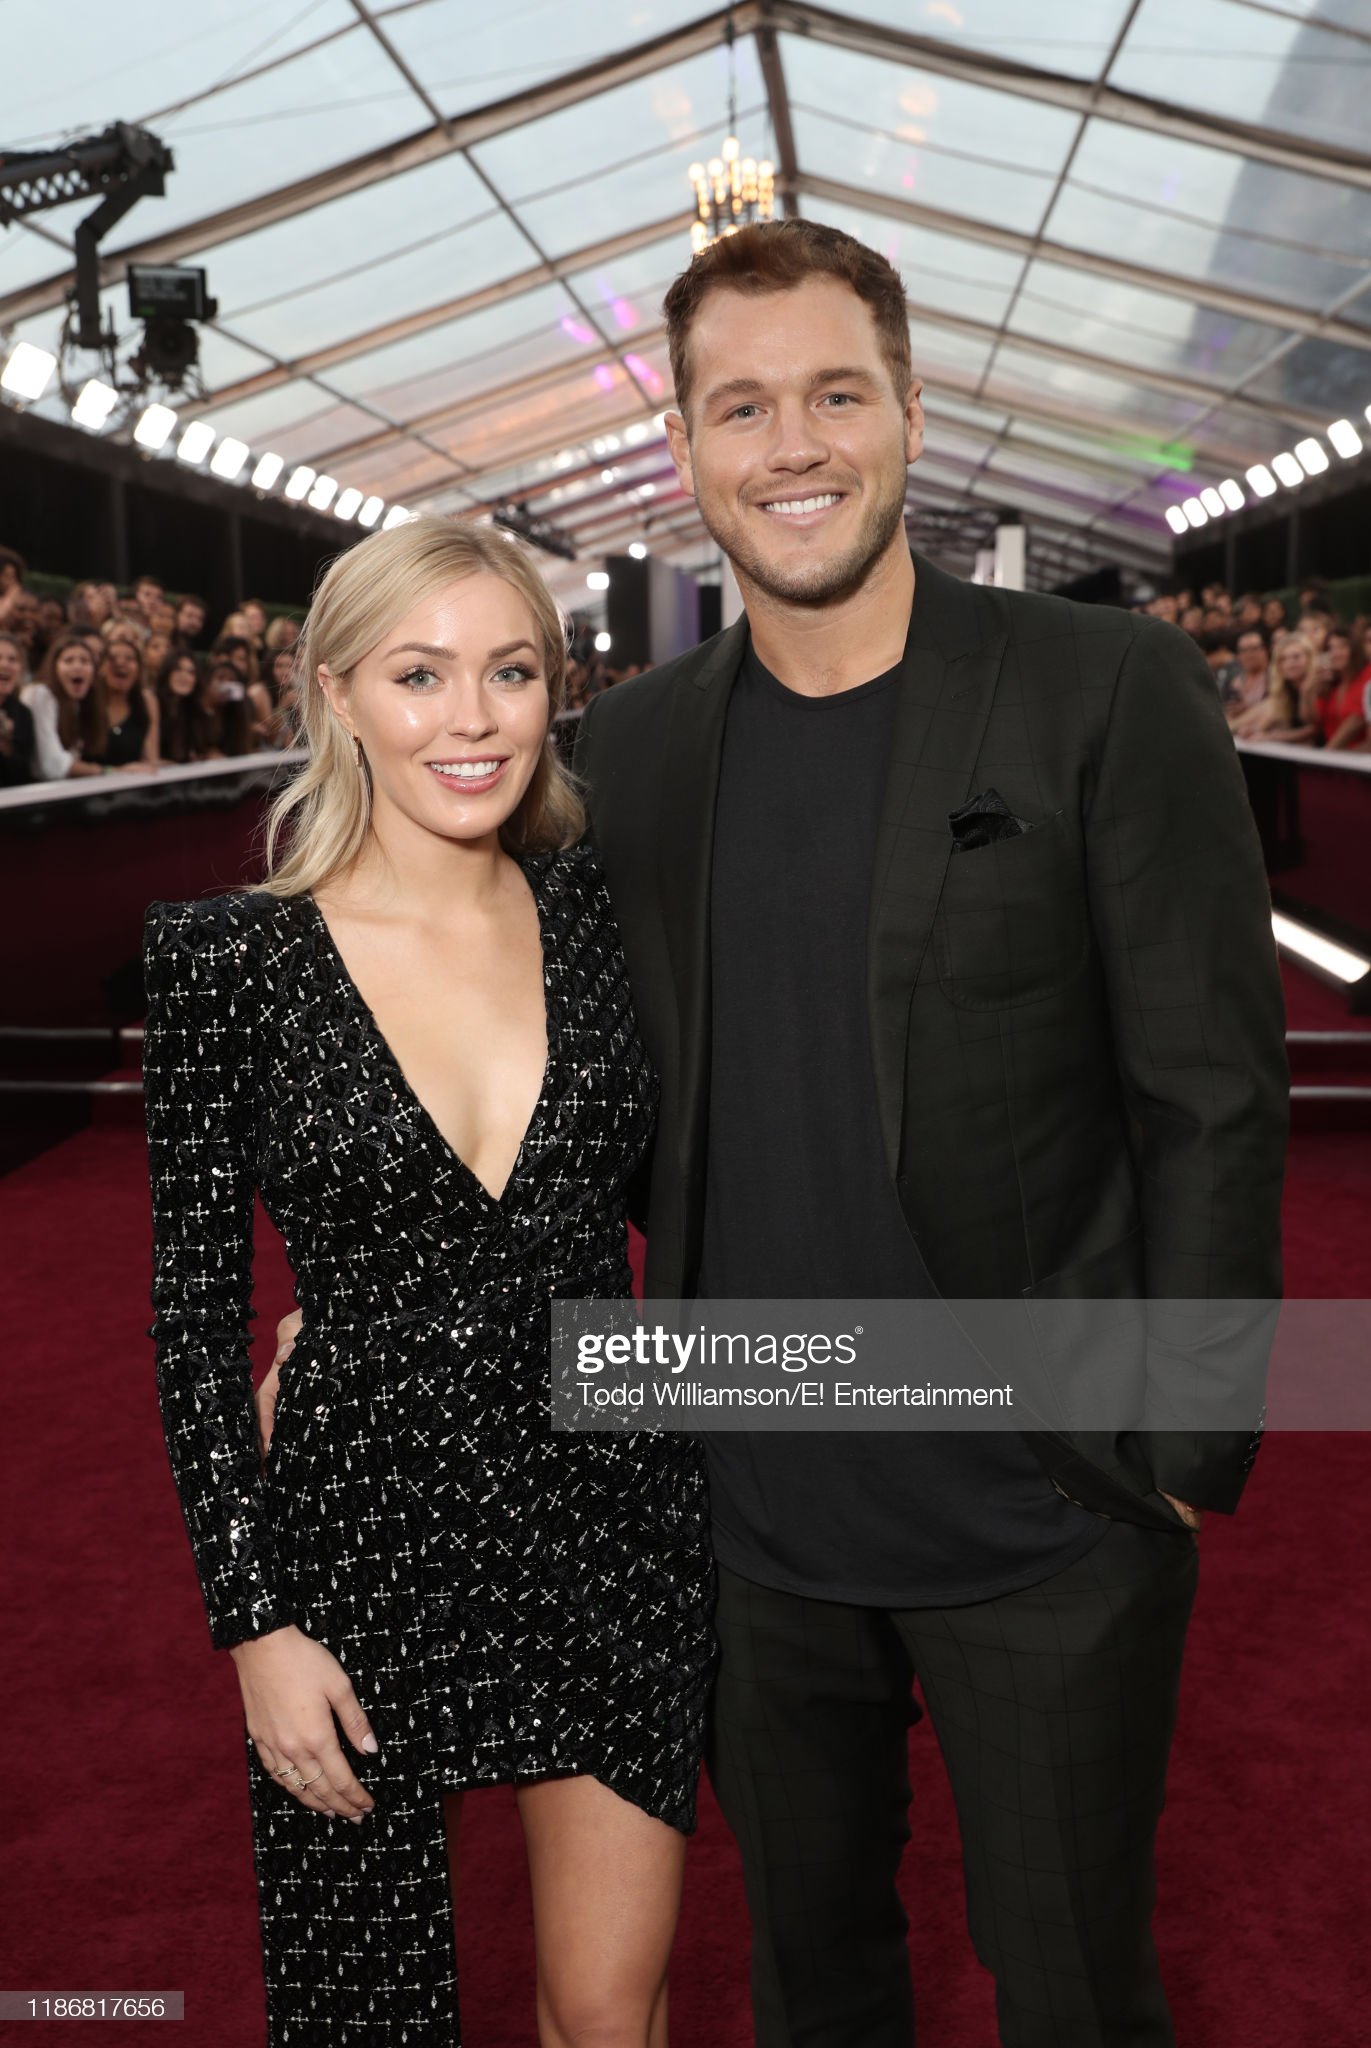 Colton Underwood & Cassie Randolph - Bachelor 23 - Discussion - Page 14 Pictured-cassie-randolph-and-colton-underwood-arrive-to-the-2019-e-picture-id1186817656?s=2048x2048